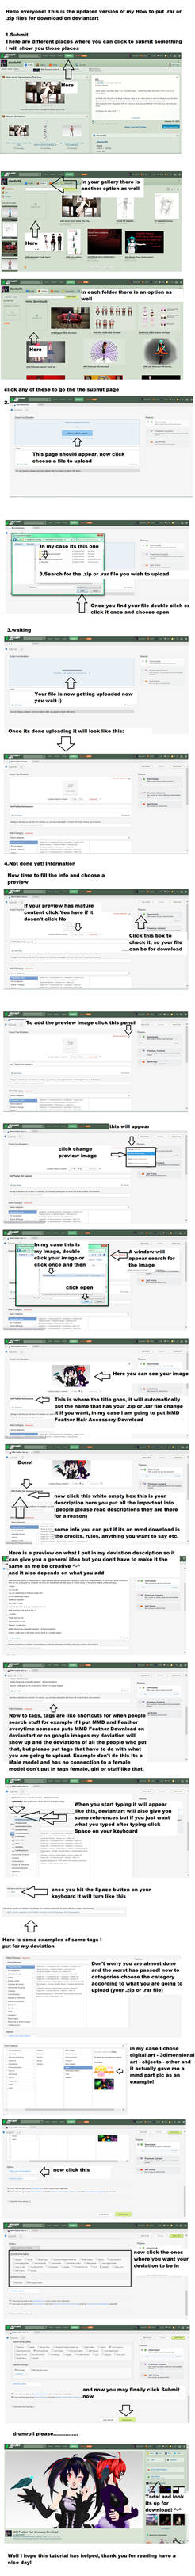 How to put rar/zip files on deviantart for DL